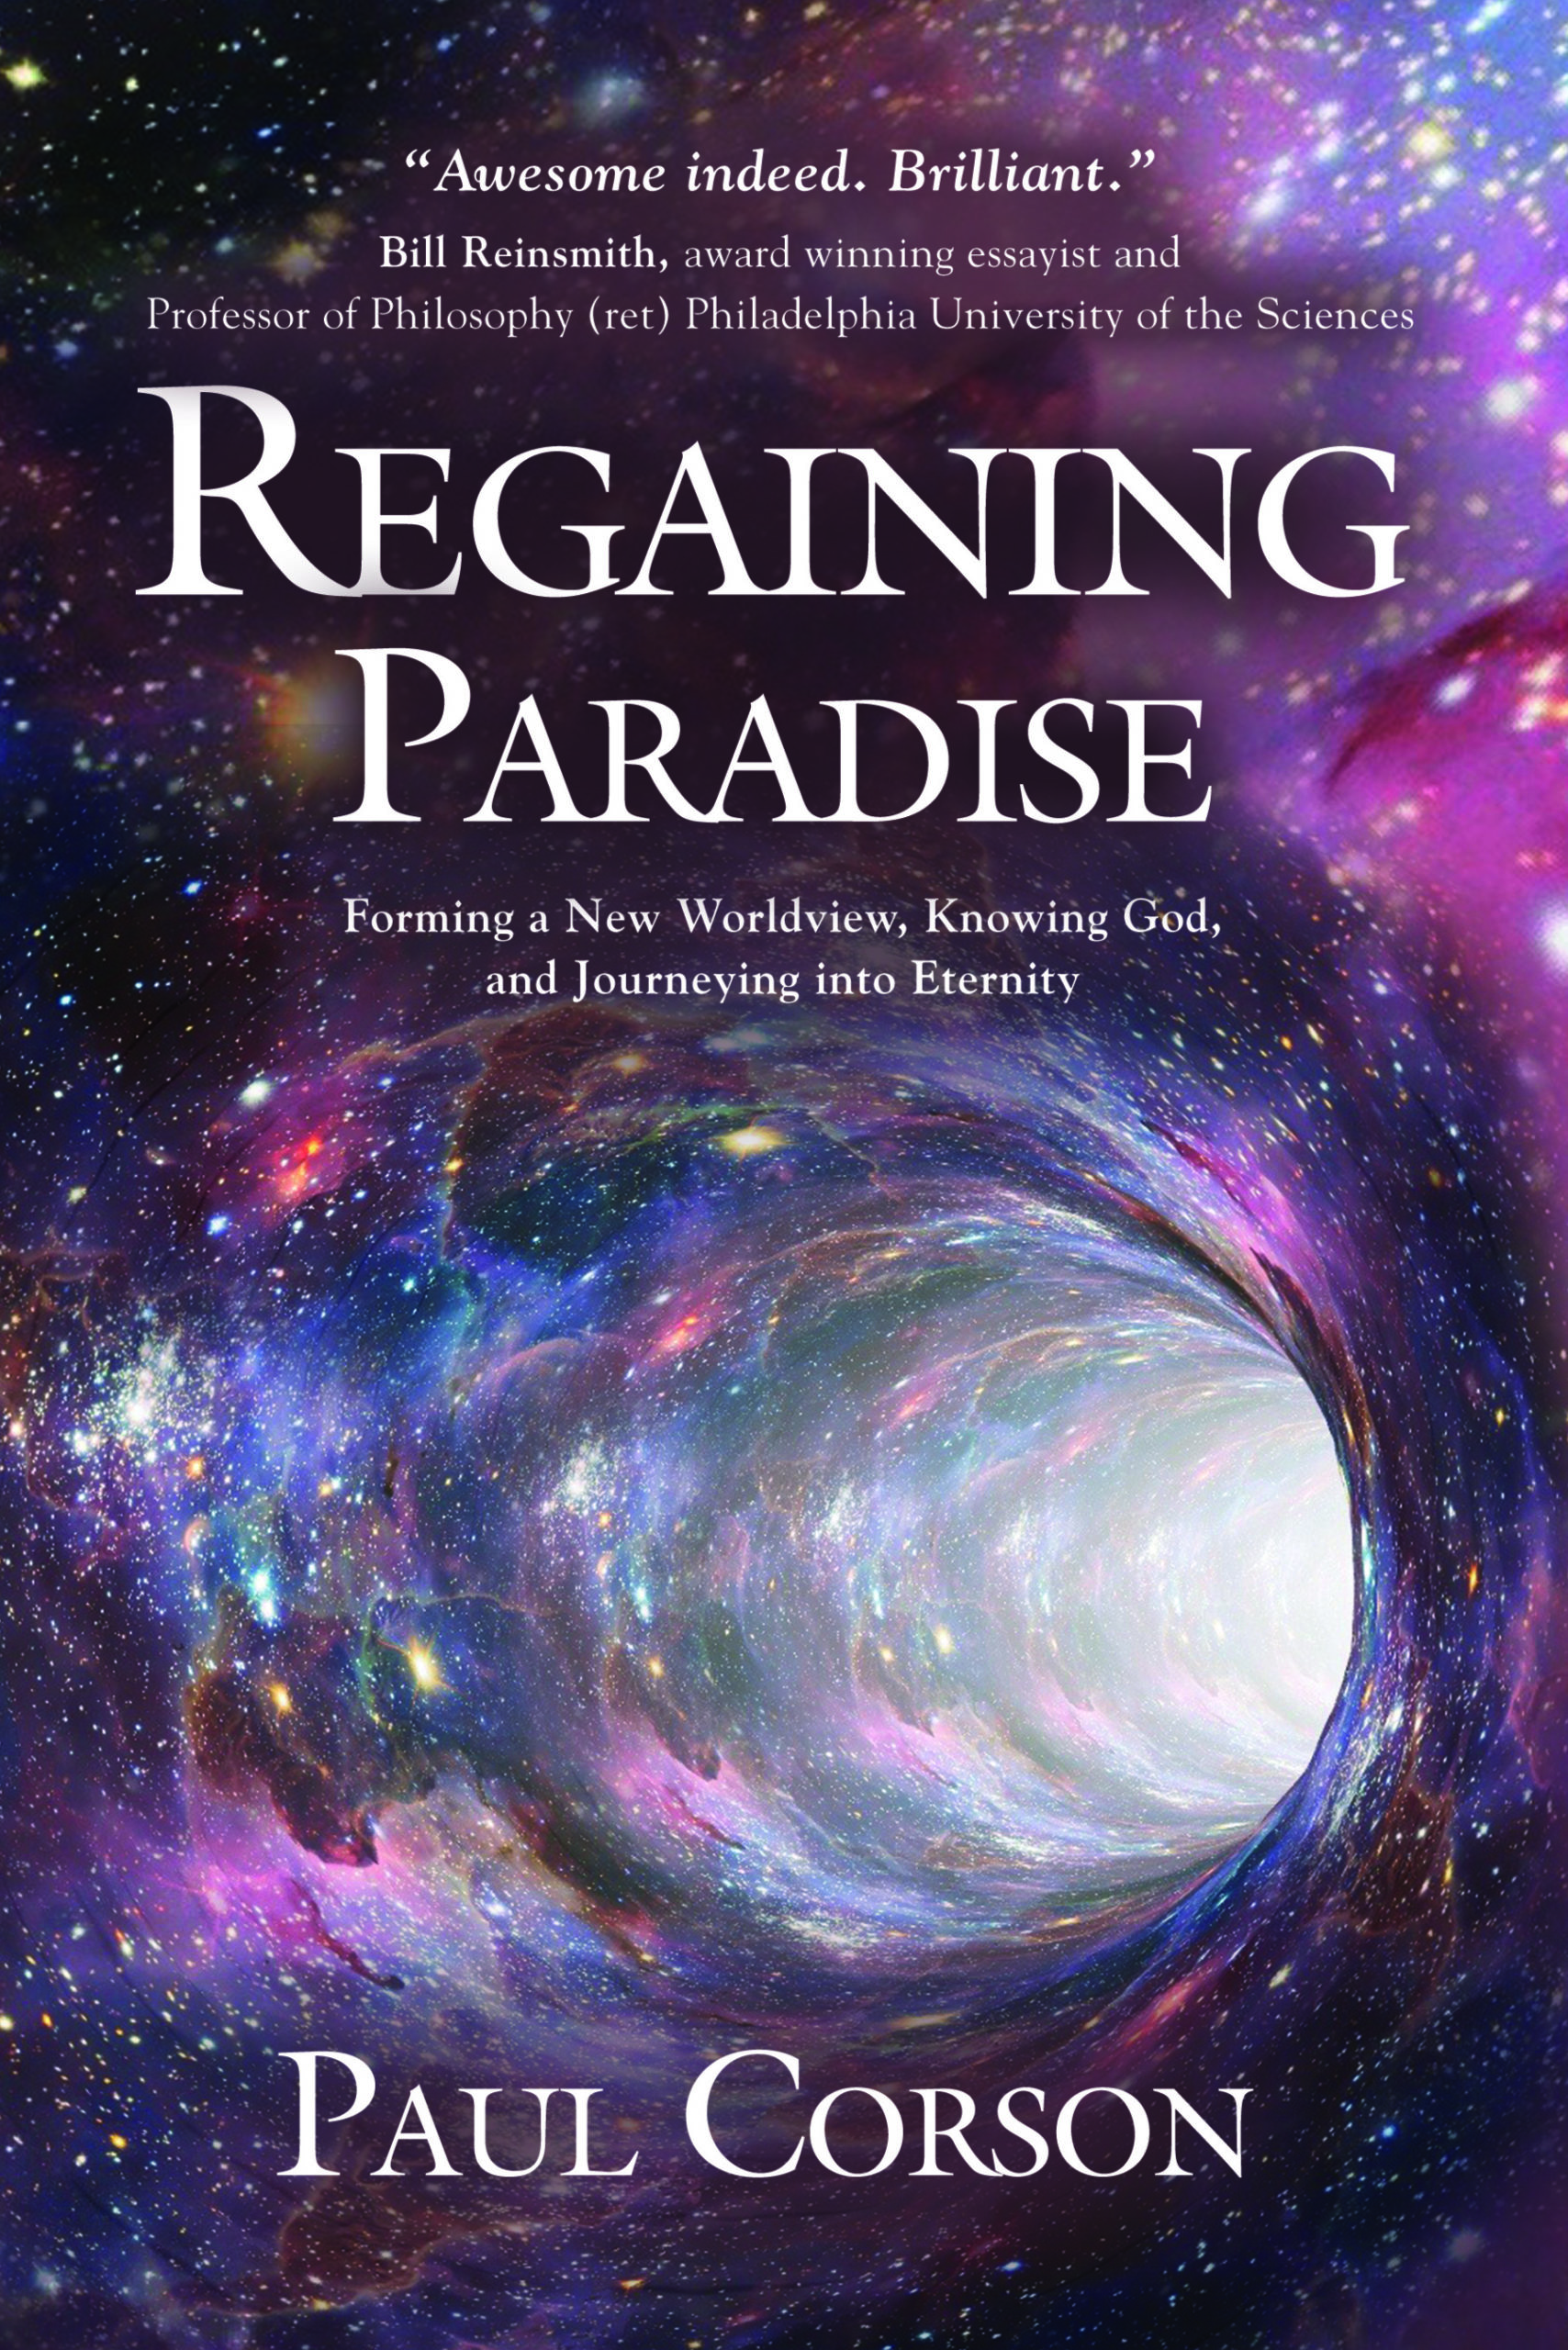 Regaining Paradise: Forming a New Worldview, Knowing God, and Journeying into Eternity